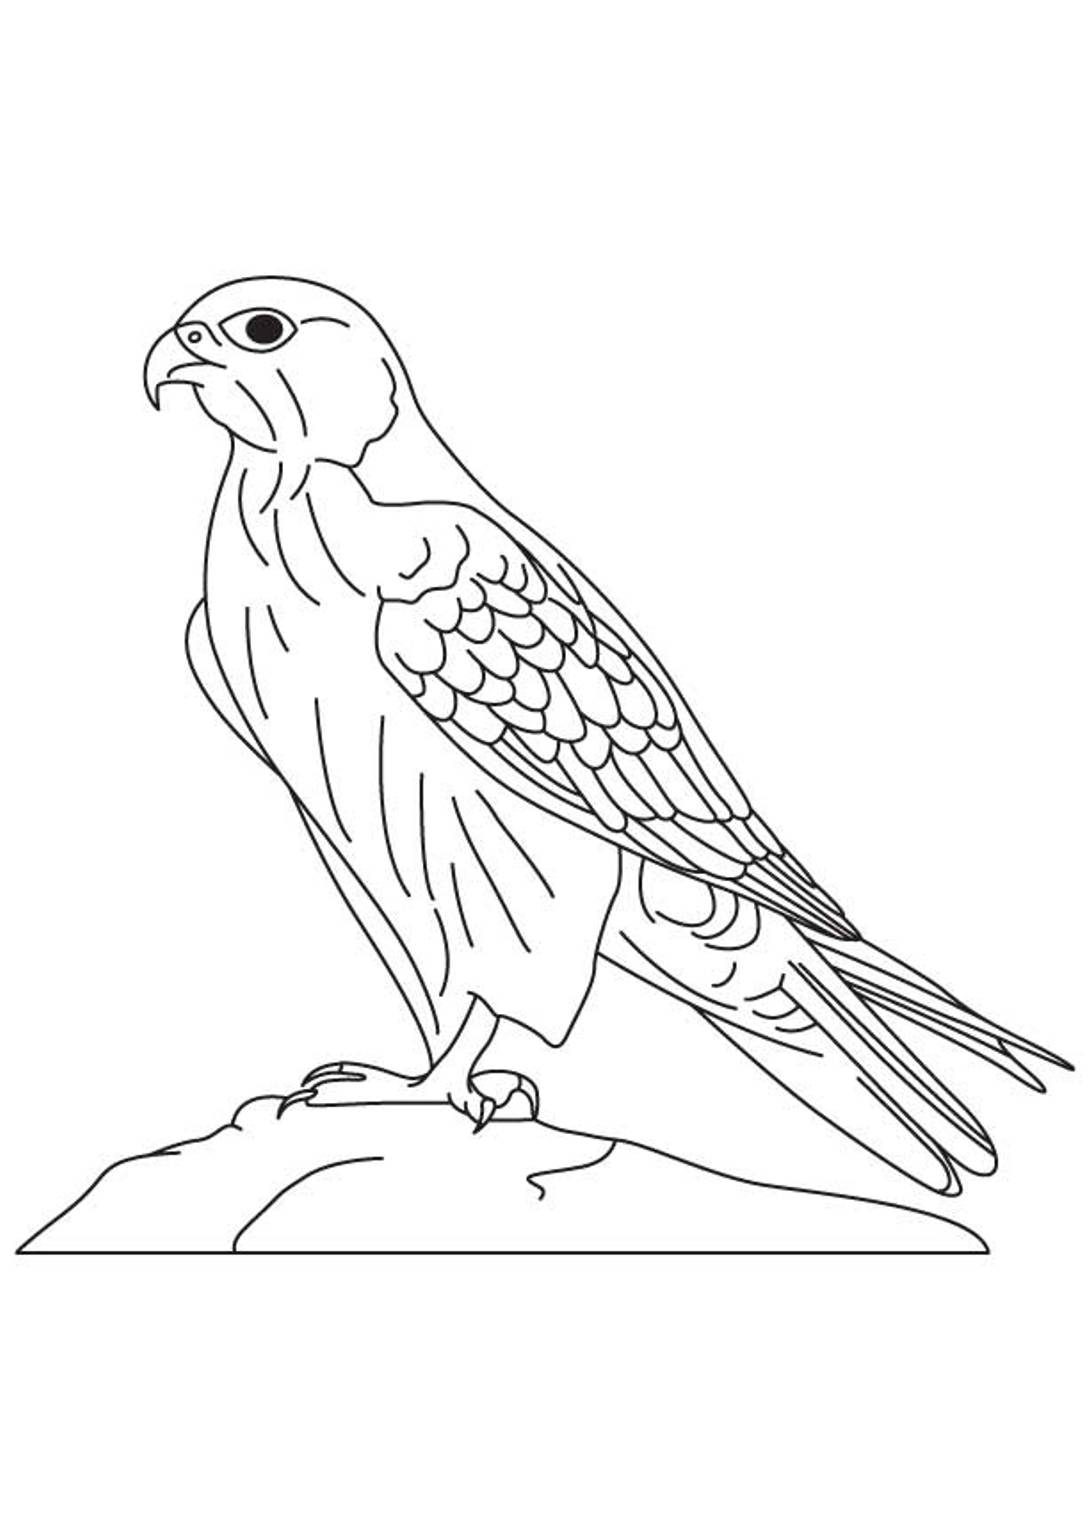 Falcon clipart coloring page. Peregrine pencil and in